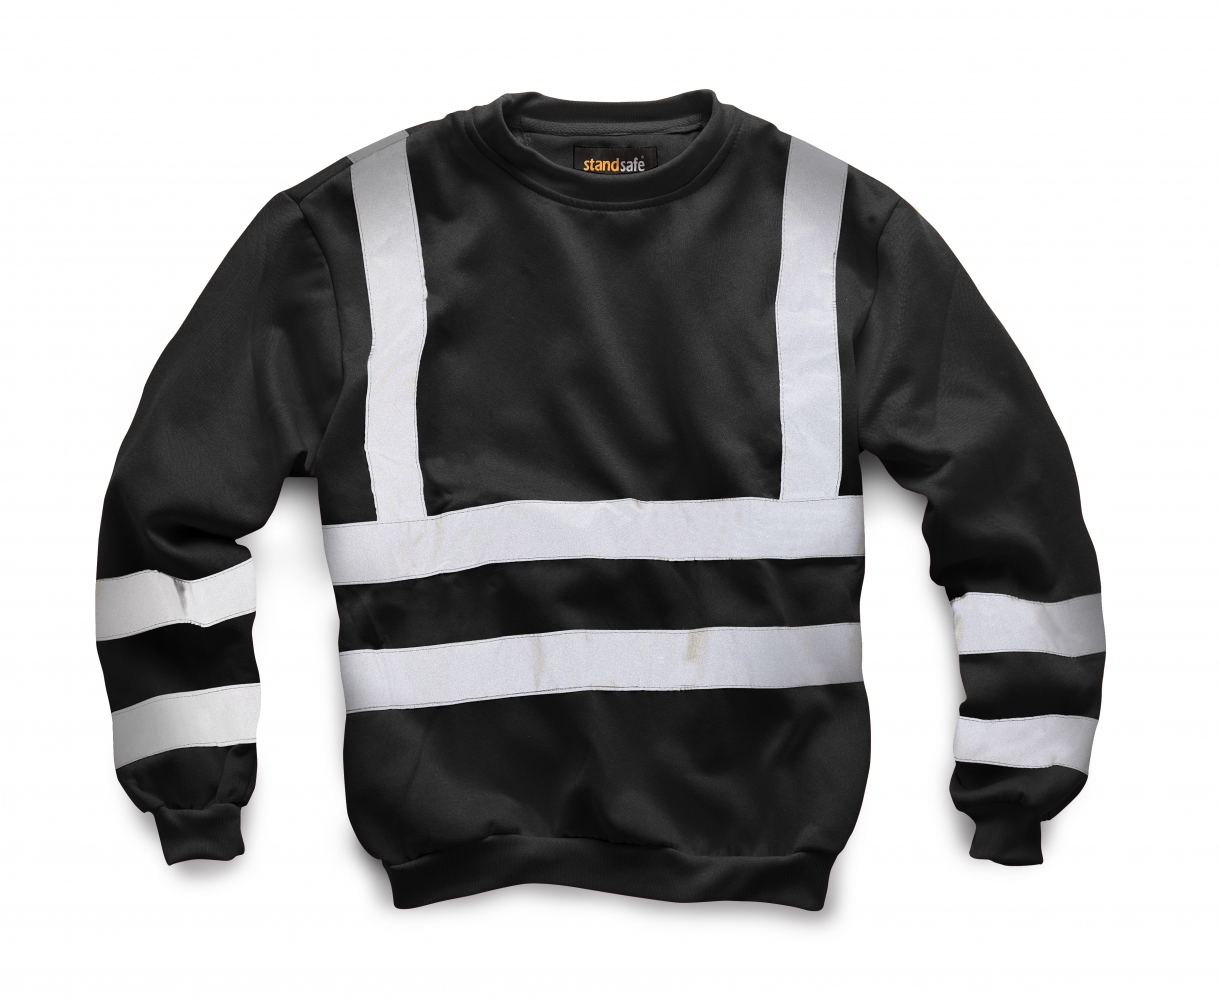 pics/Standsafe/standsafe-hv009-black-security-sweatshirt.jpg